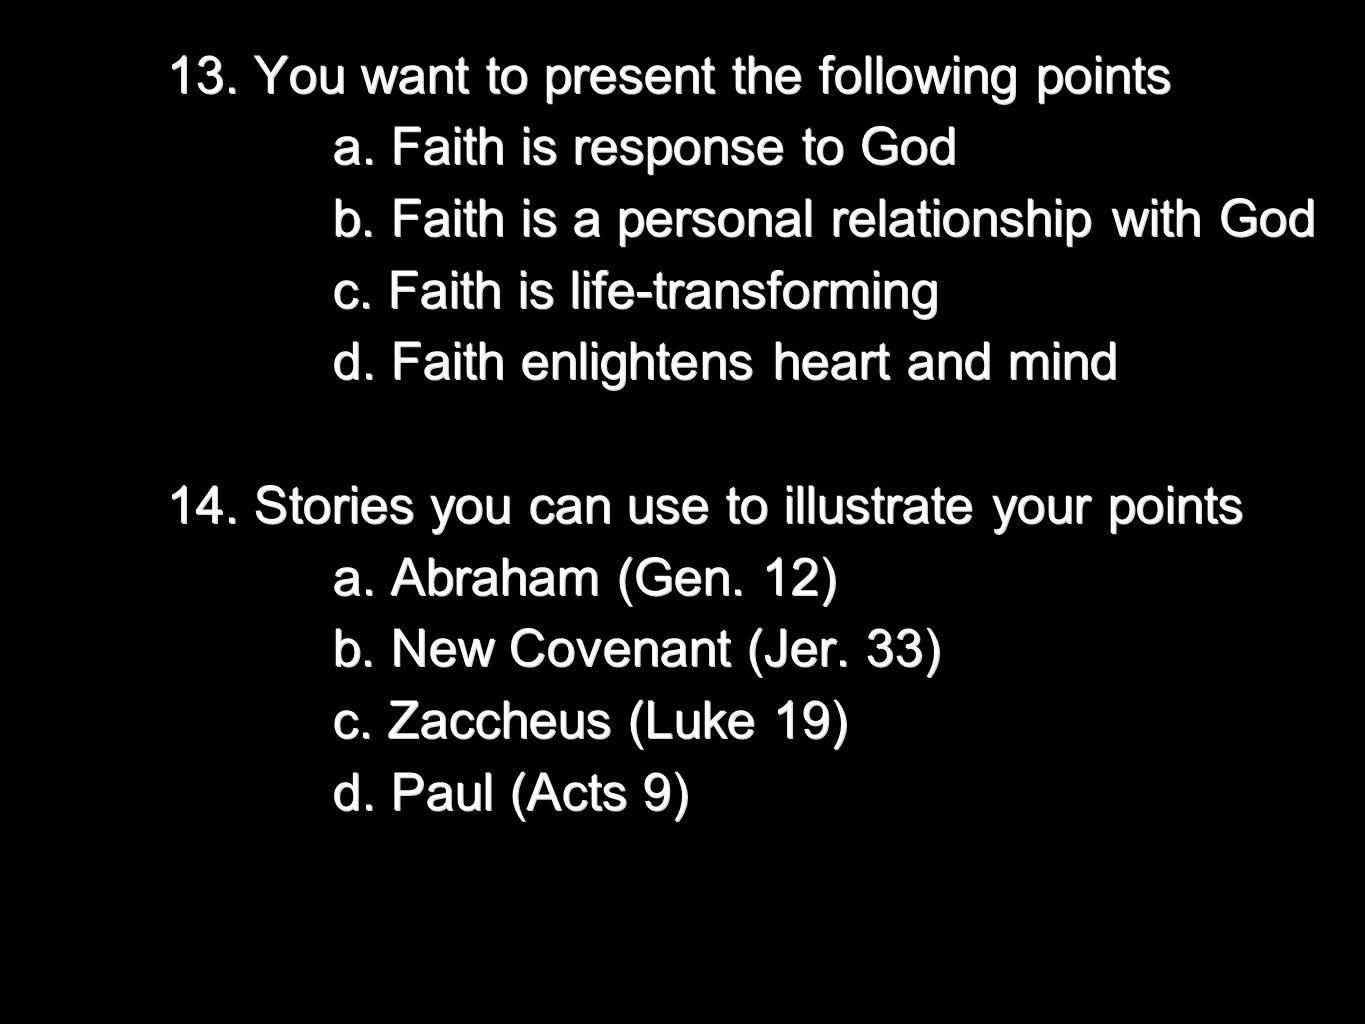 13. You want to present the following points a. Faith is response to God a. Faith is response to God b. Faith is a personal relationship with God b. F